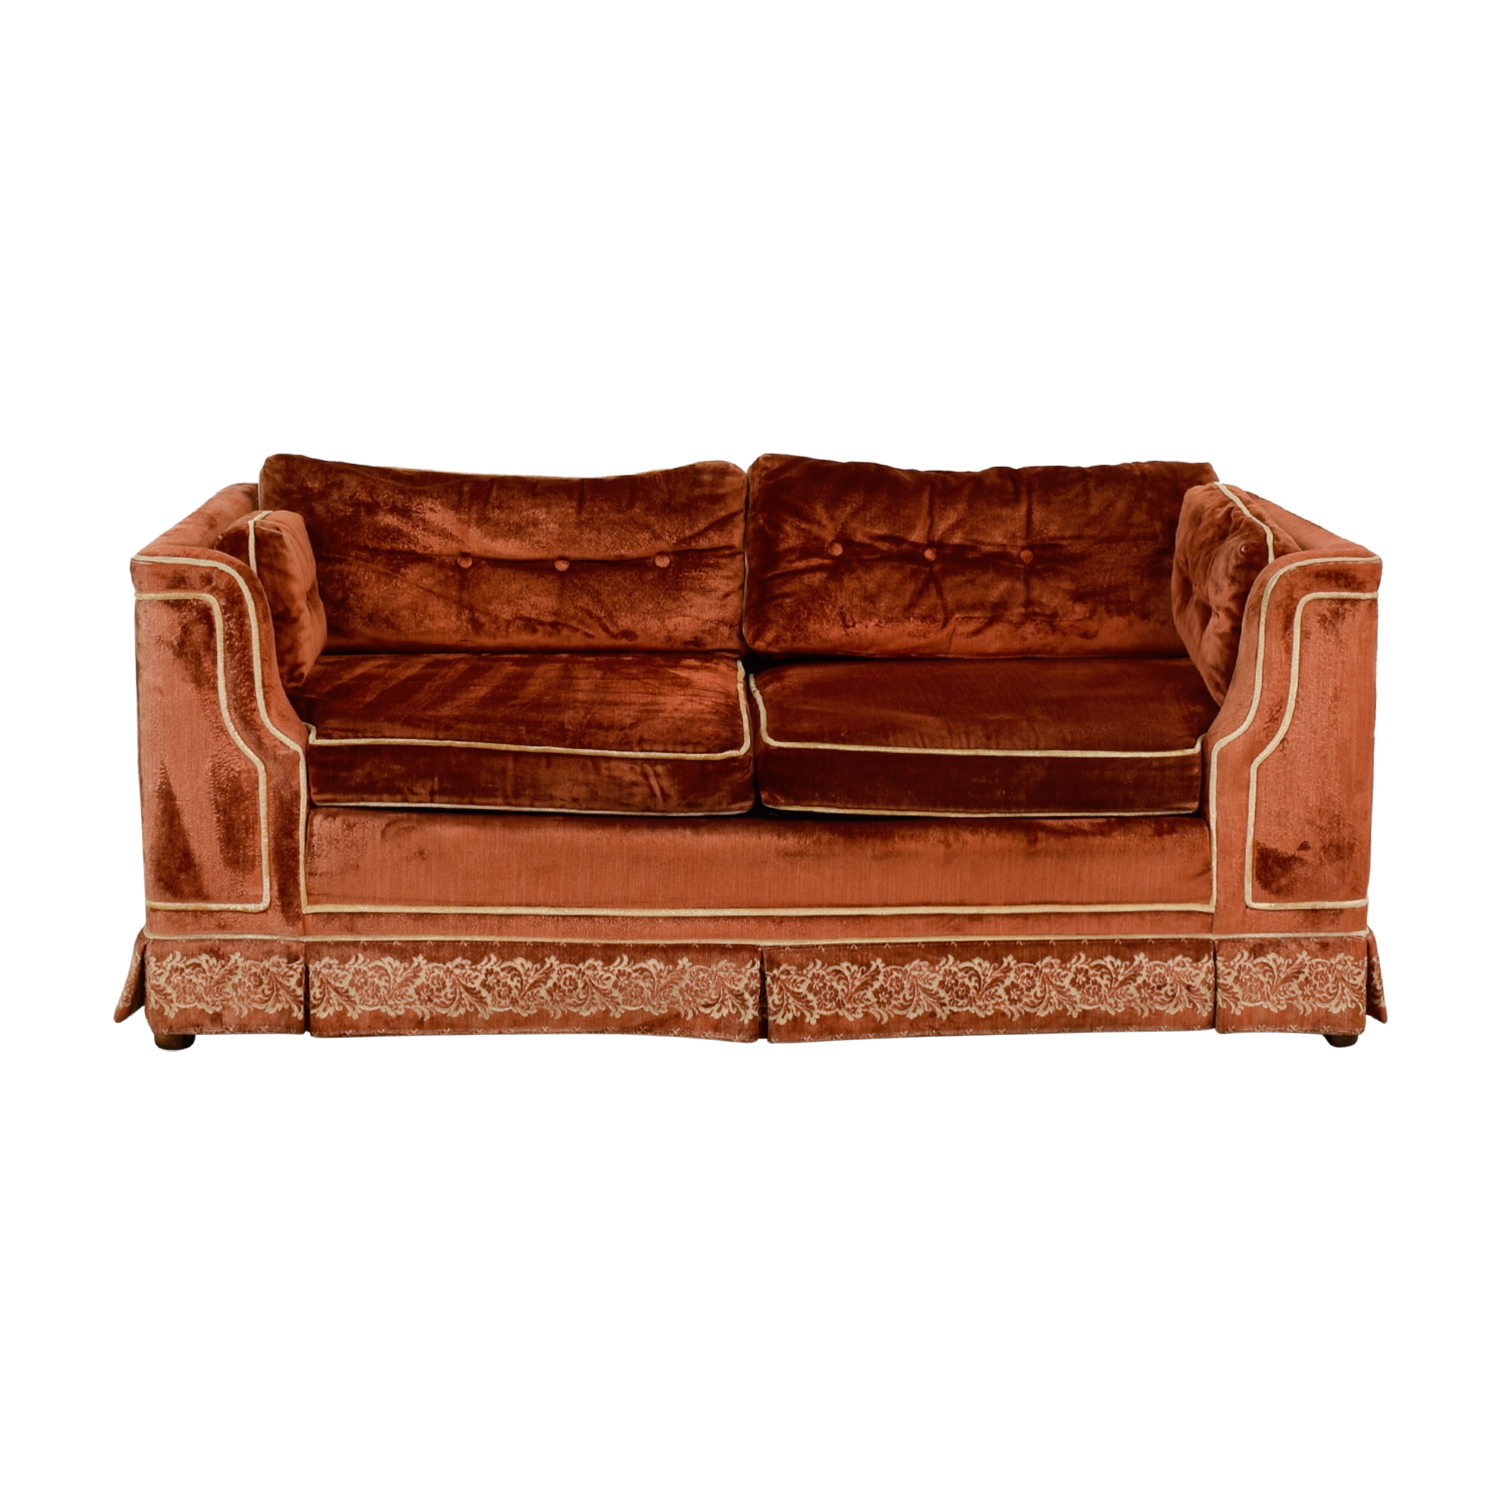 Orange with Beige Embroidered Trim Loveseat on sale